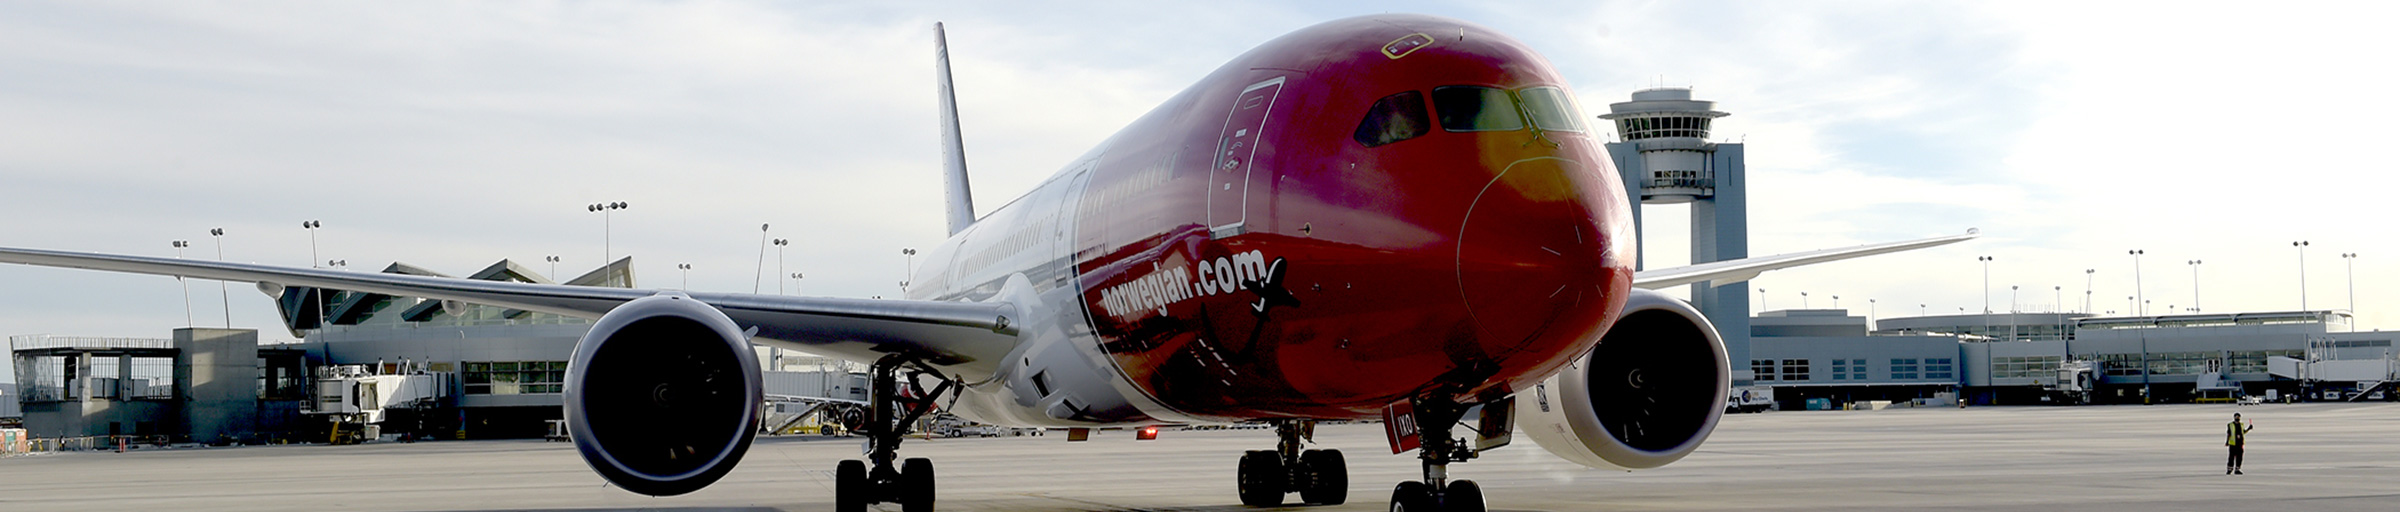 Norwegian Airlines at McCarran